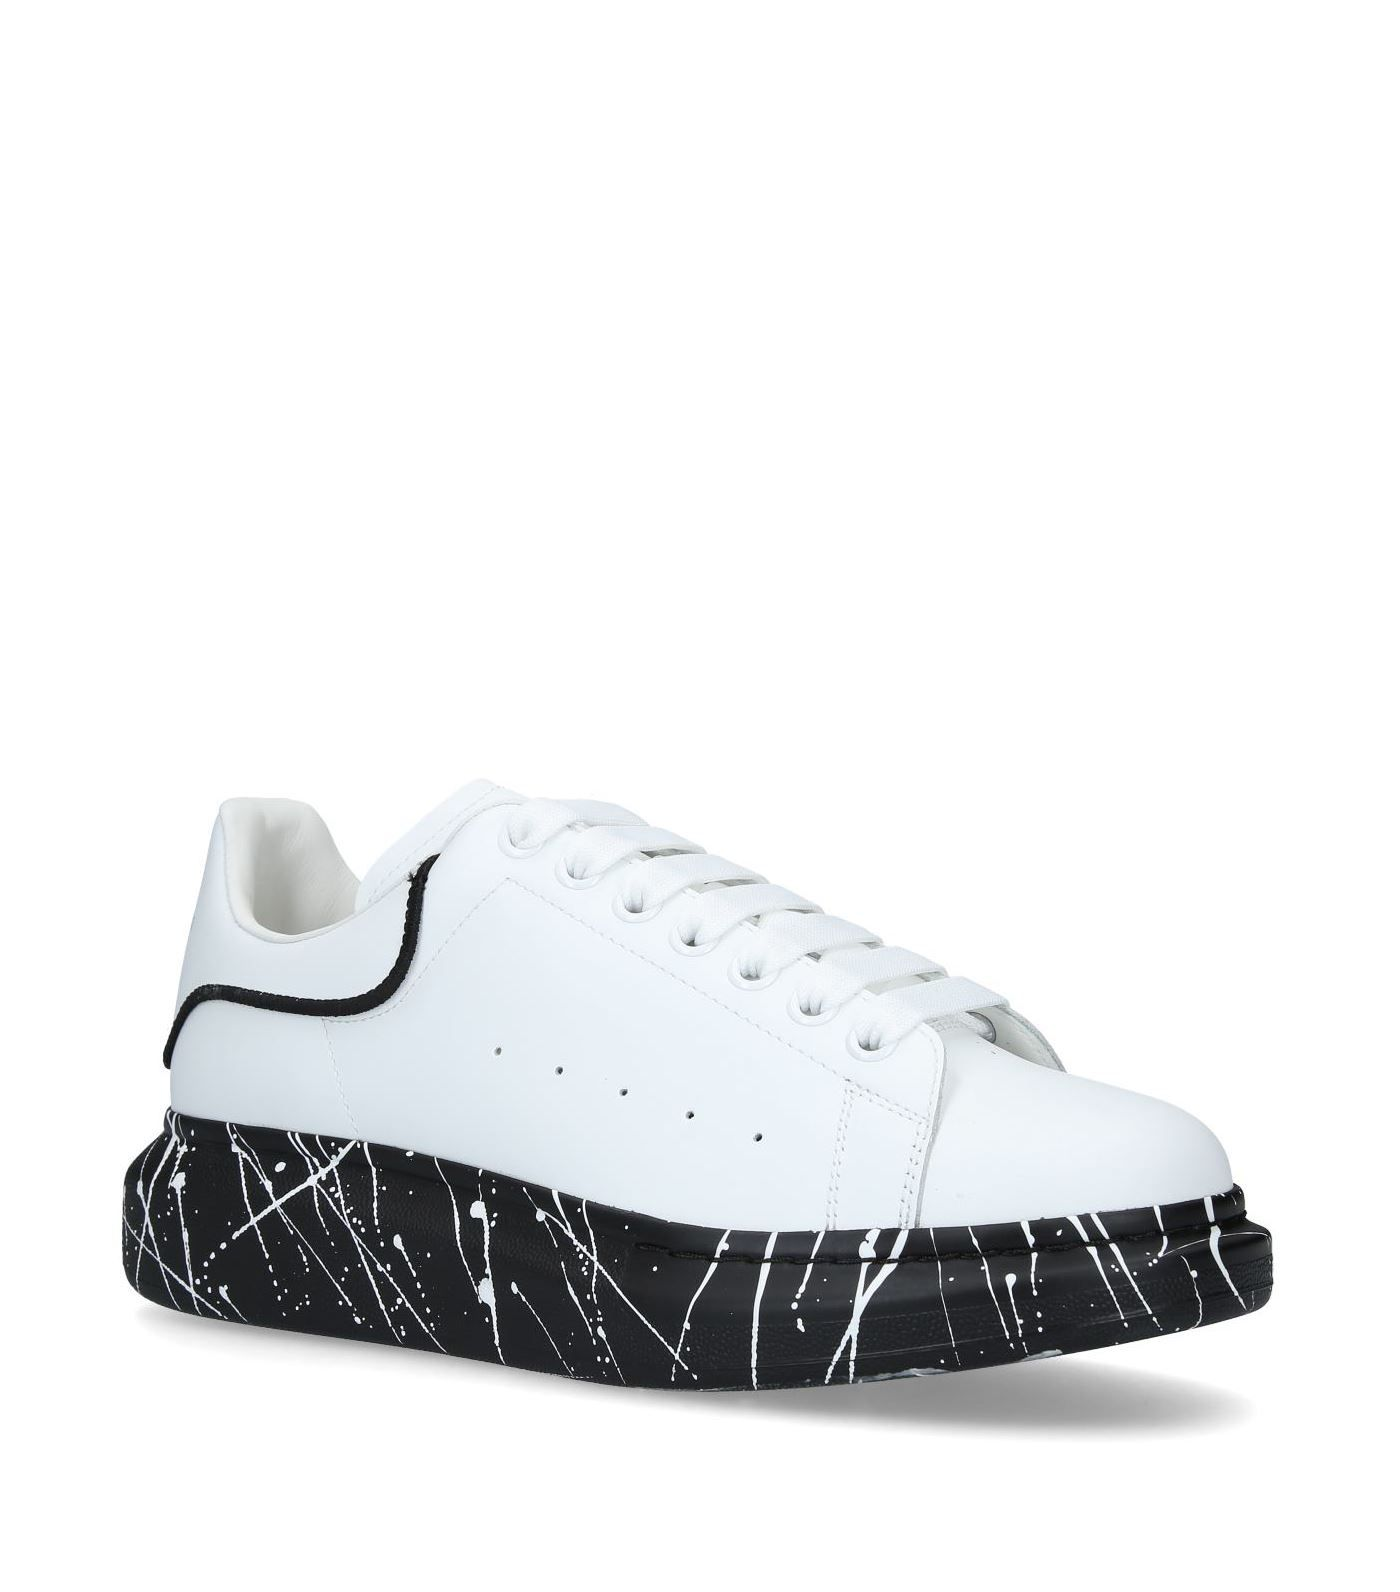 Alexander Mcqueen Oversized Sneaker In Leather With Paint Splat Outsole In White Modesens Alexander Mcqueen Shoes Alexander Mcqueen Sneakers Sneakers